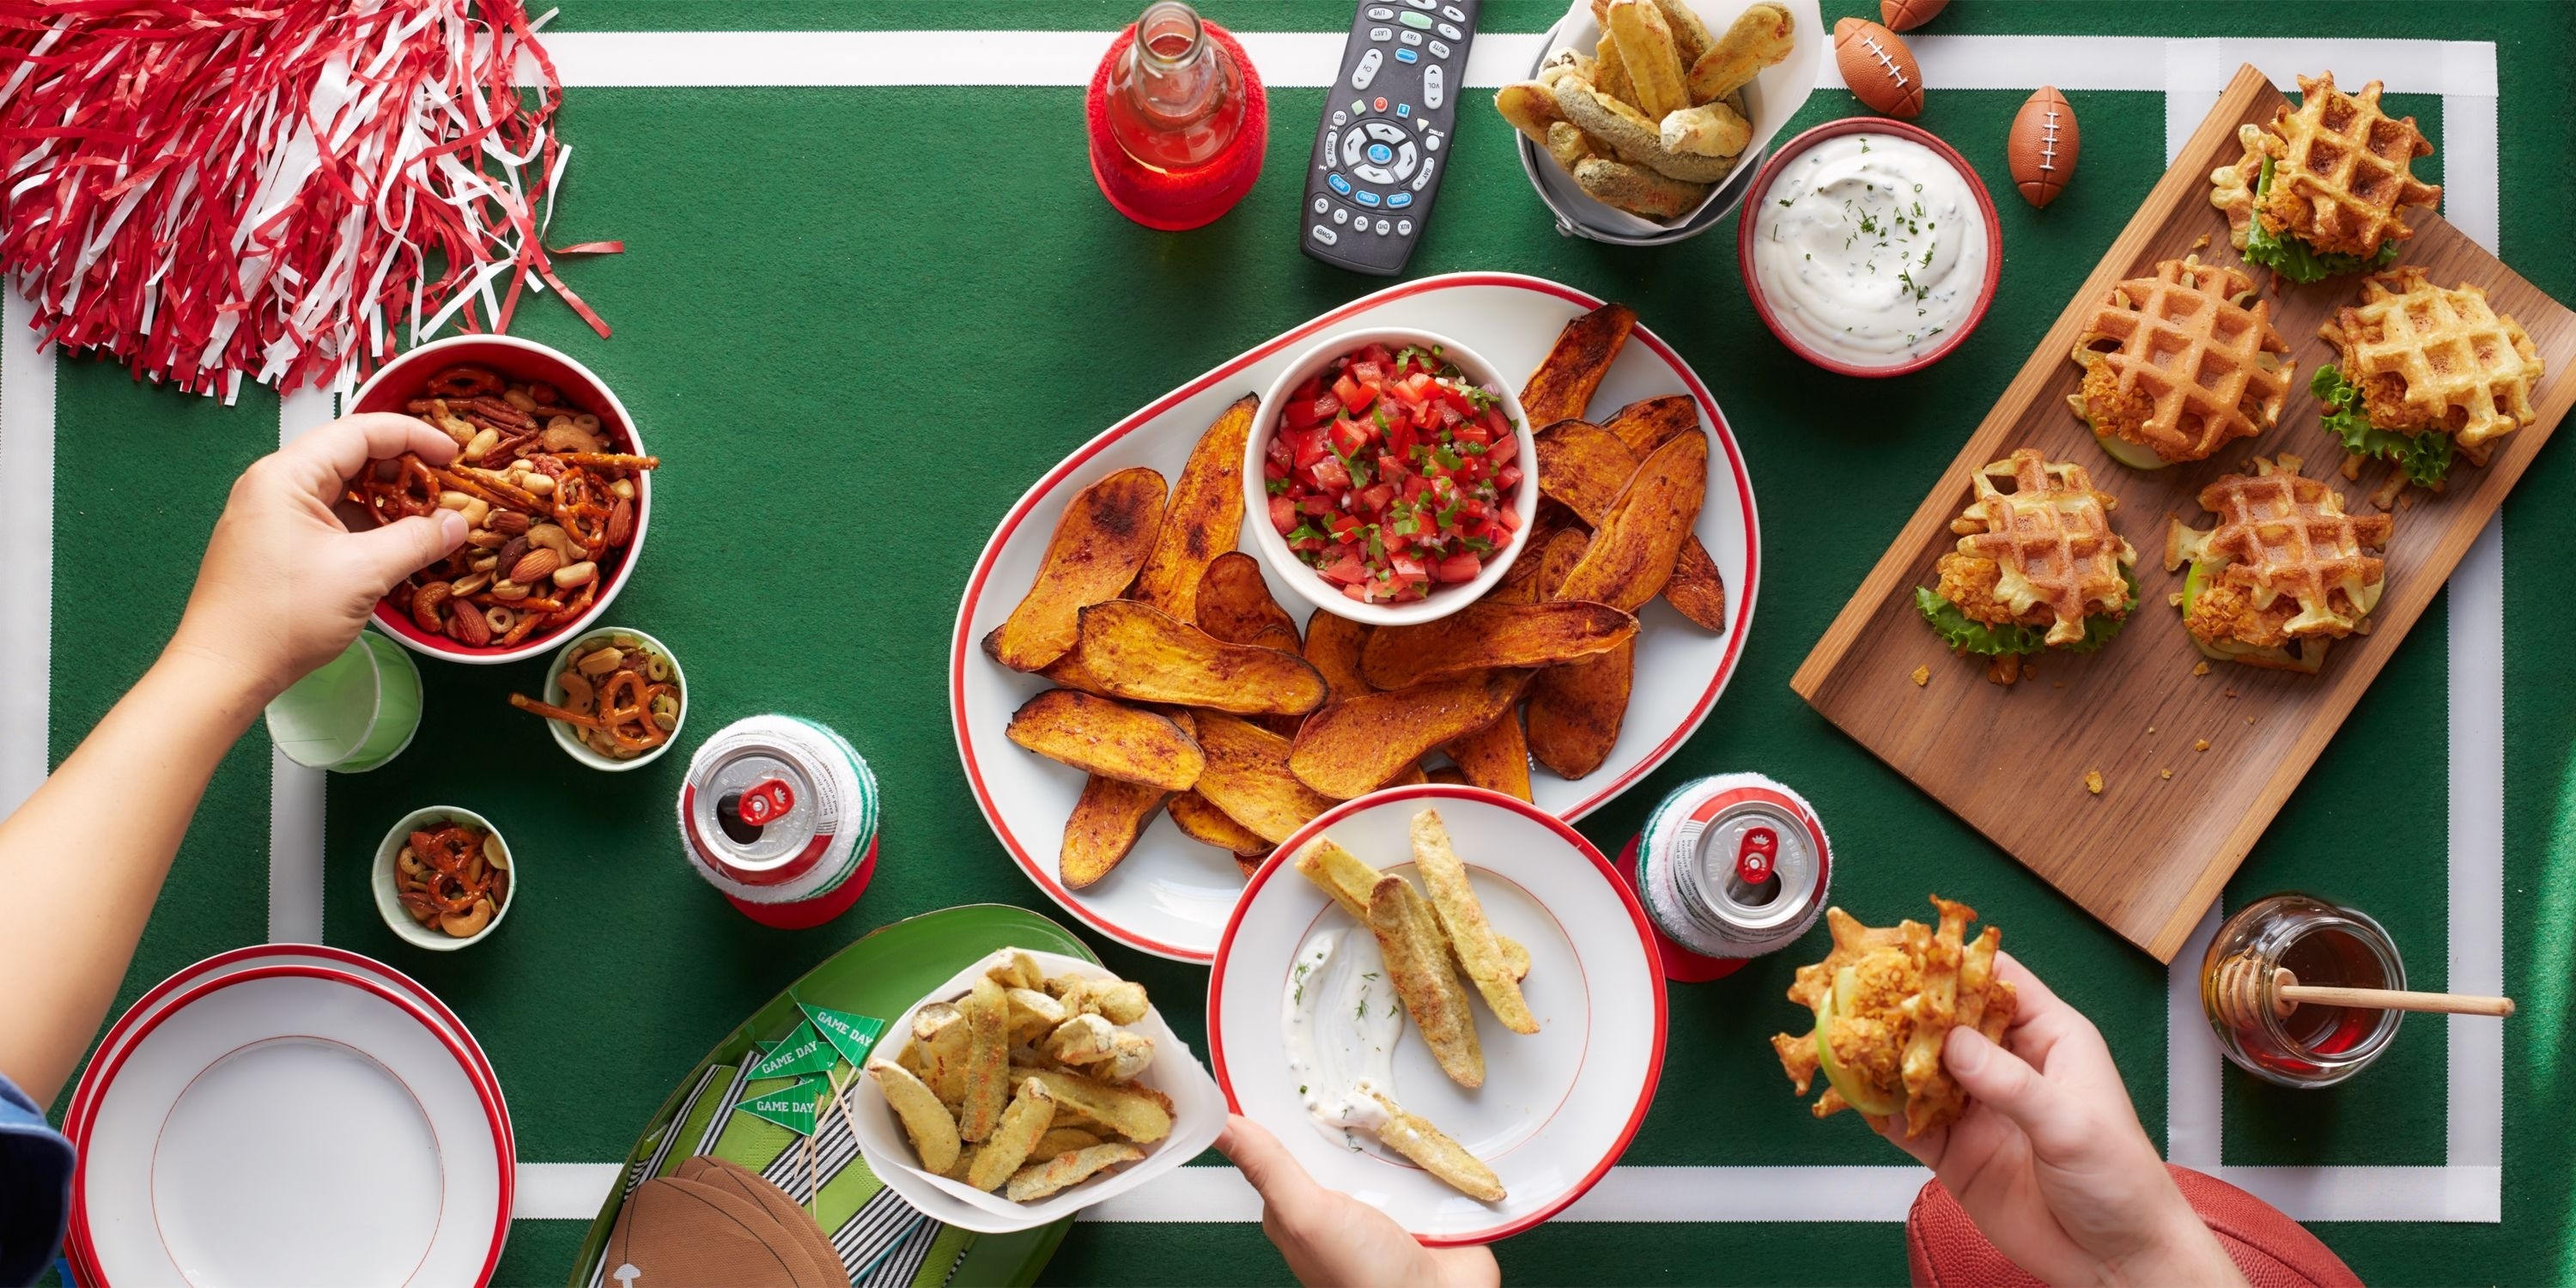 45 Super Bowl Snack Recipes - Football Party Food Ideas intended for Google Super Bowl Food Map